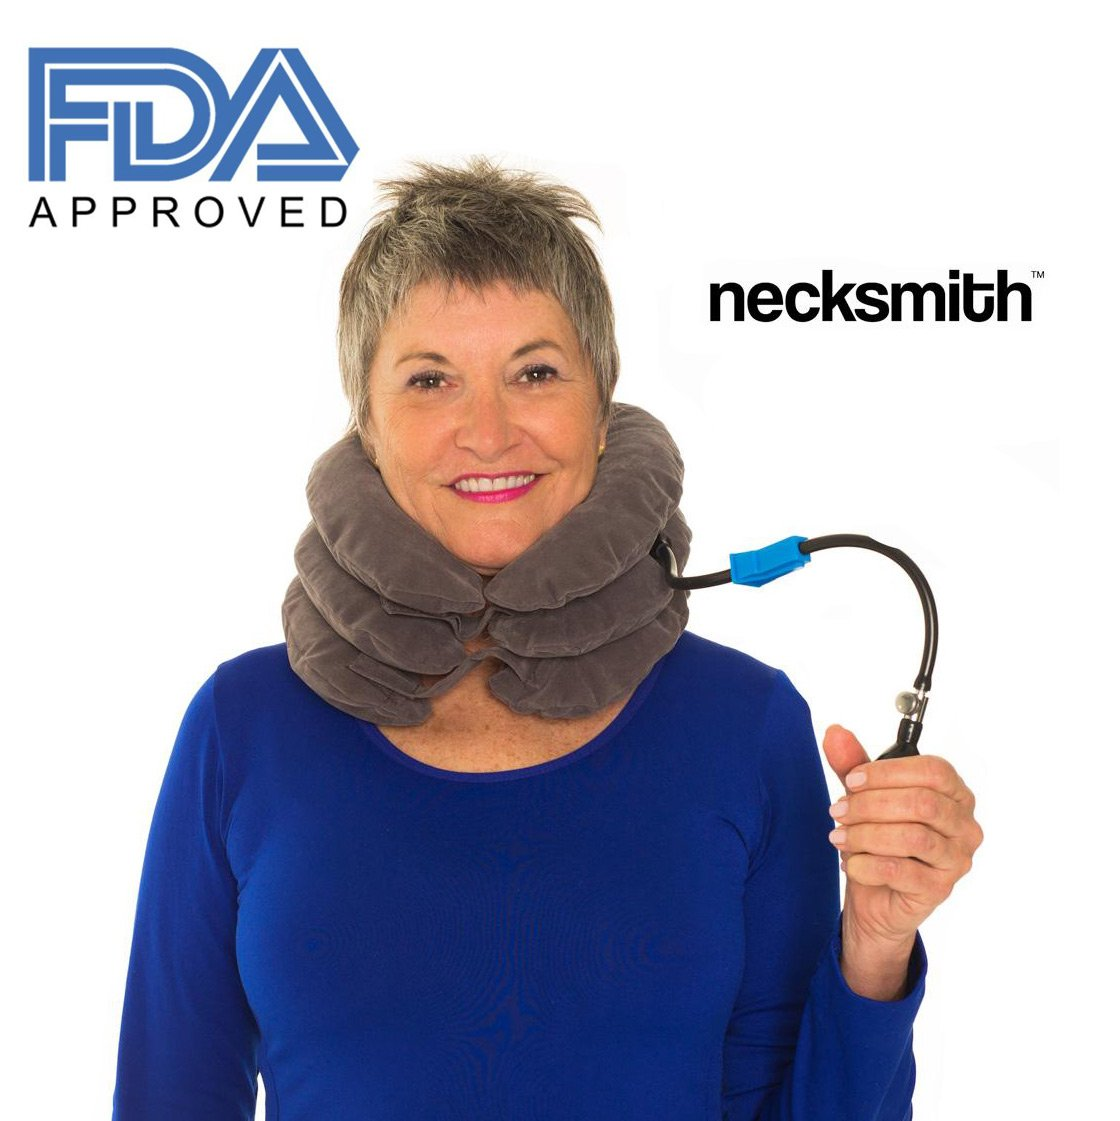 Necksmith™ Cervical Neck Traction Travel Pillow Device & Adjustable Neck Device Collar for Pain Relief and Support with FREE Neck Extensions by Necksmith (Image #3)